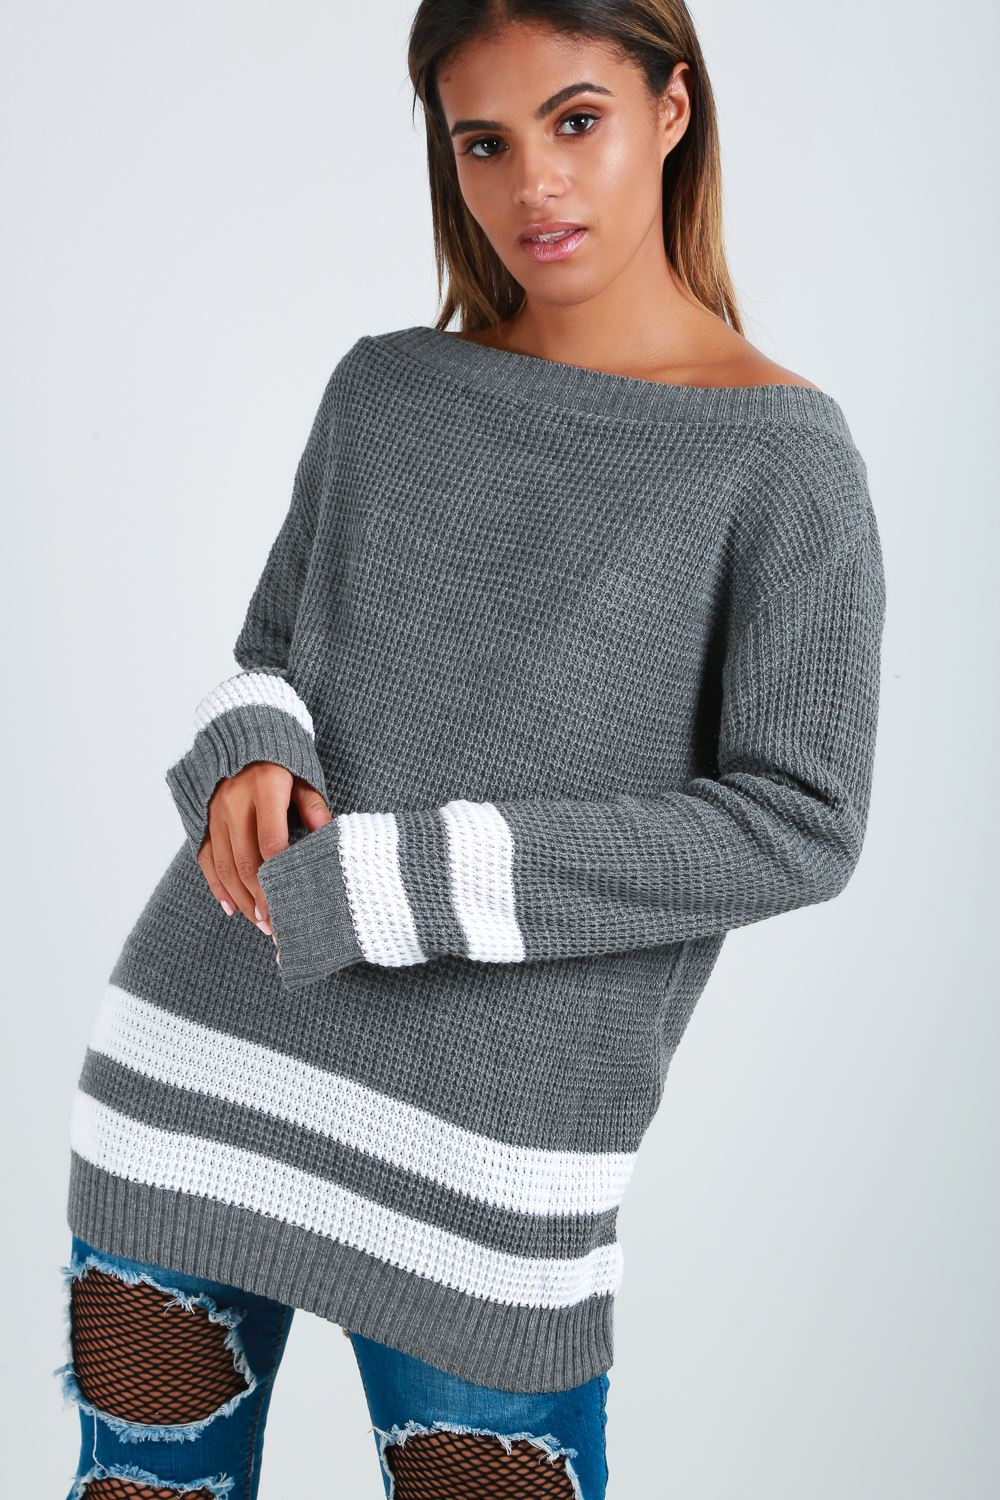 Womens-Oversized-Jumper-Ladies-Dress-Long-Sleeve-Chunky-Knitted-Long-Sweater-Top thumbnail 23